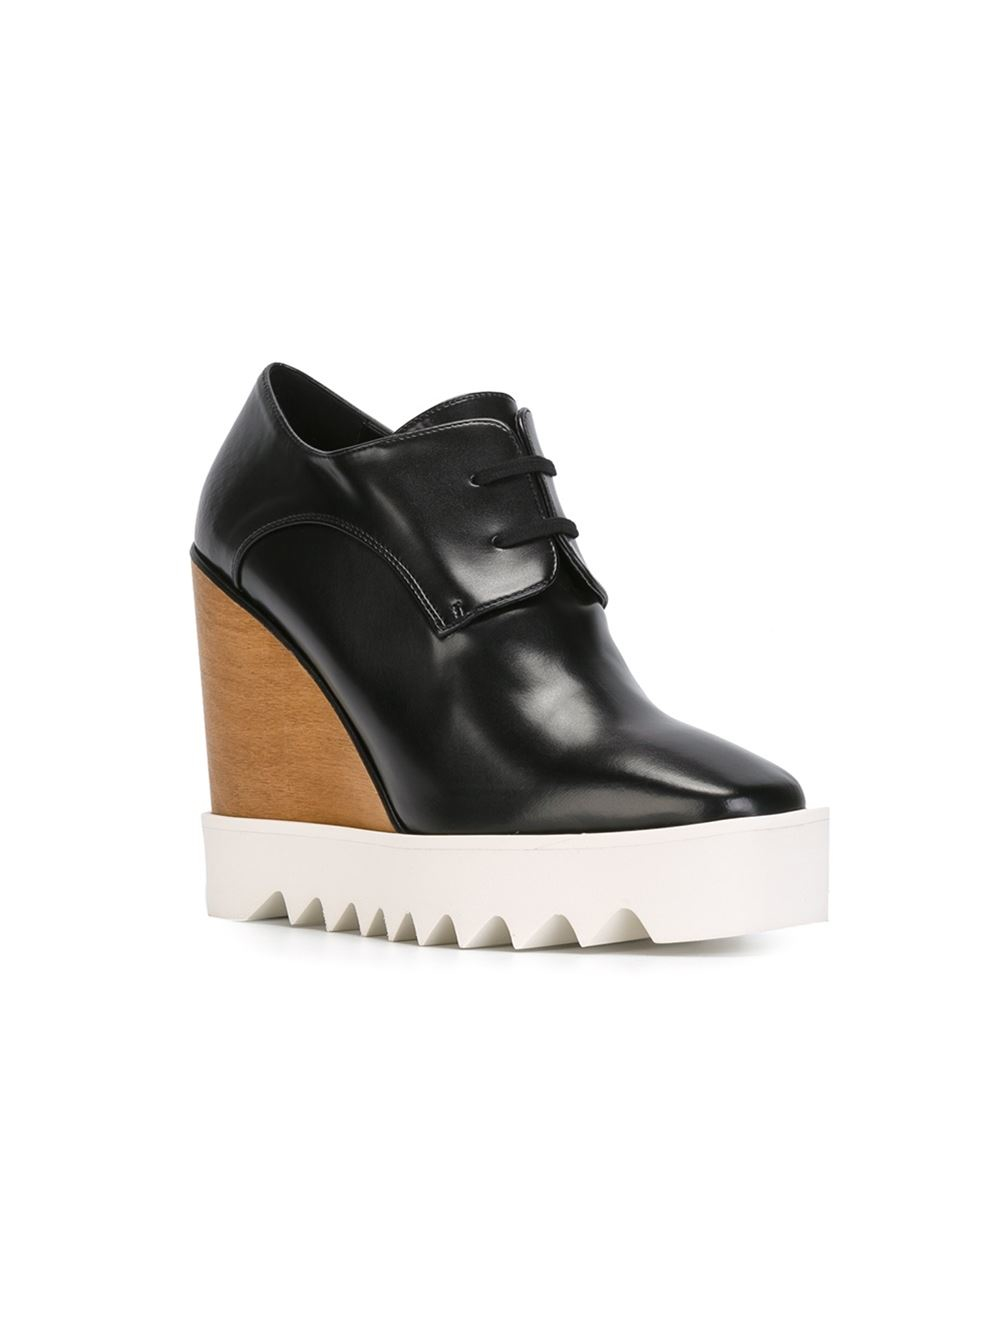 stella mccartney wedge lace up shoes in black lyst